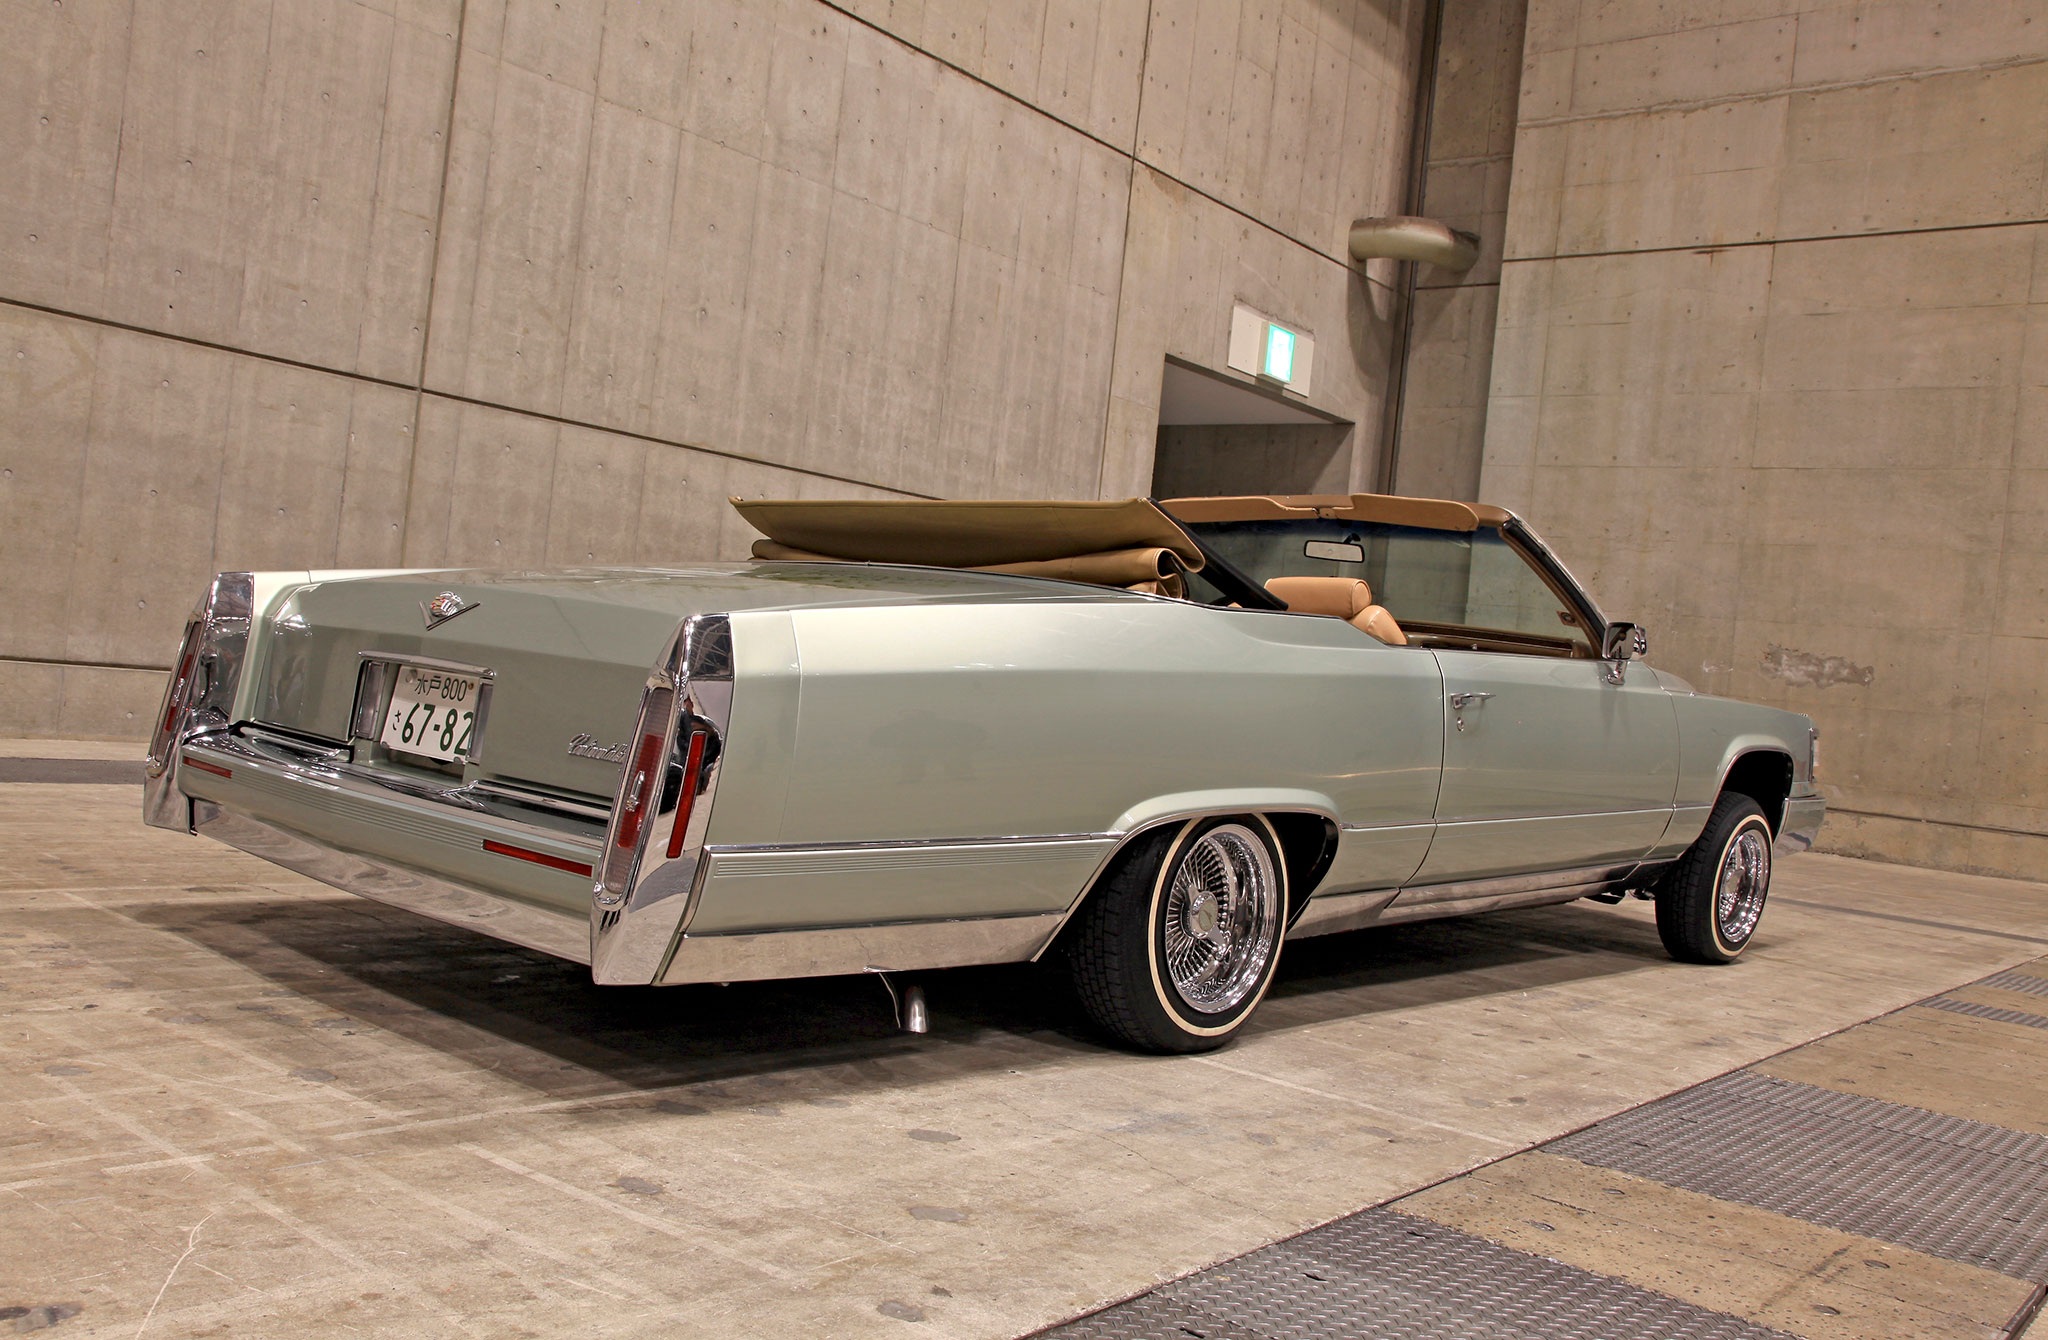 1980 Cadillac Le Cabriolet - Historical Roots